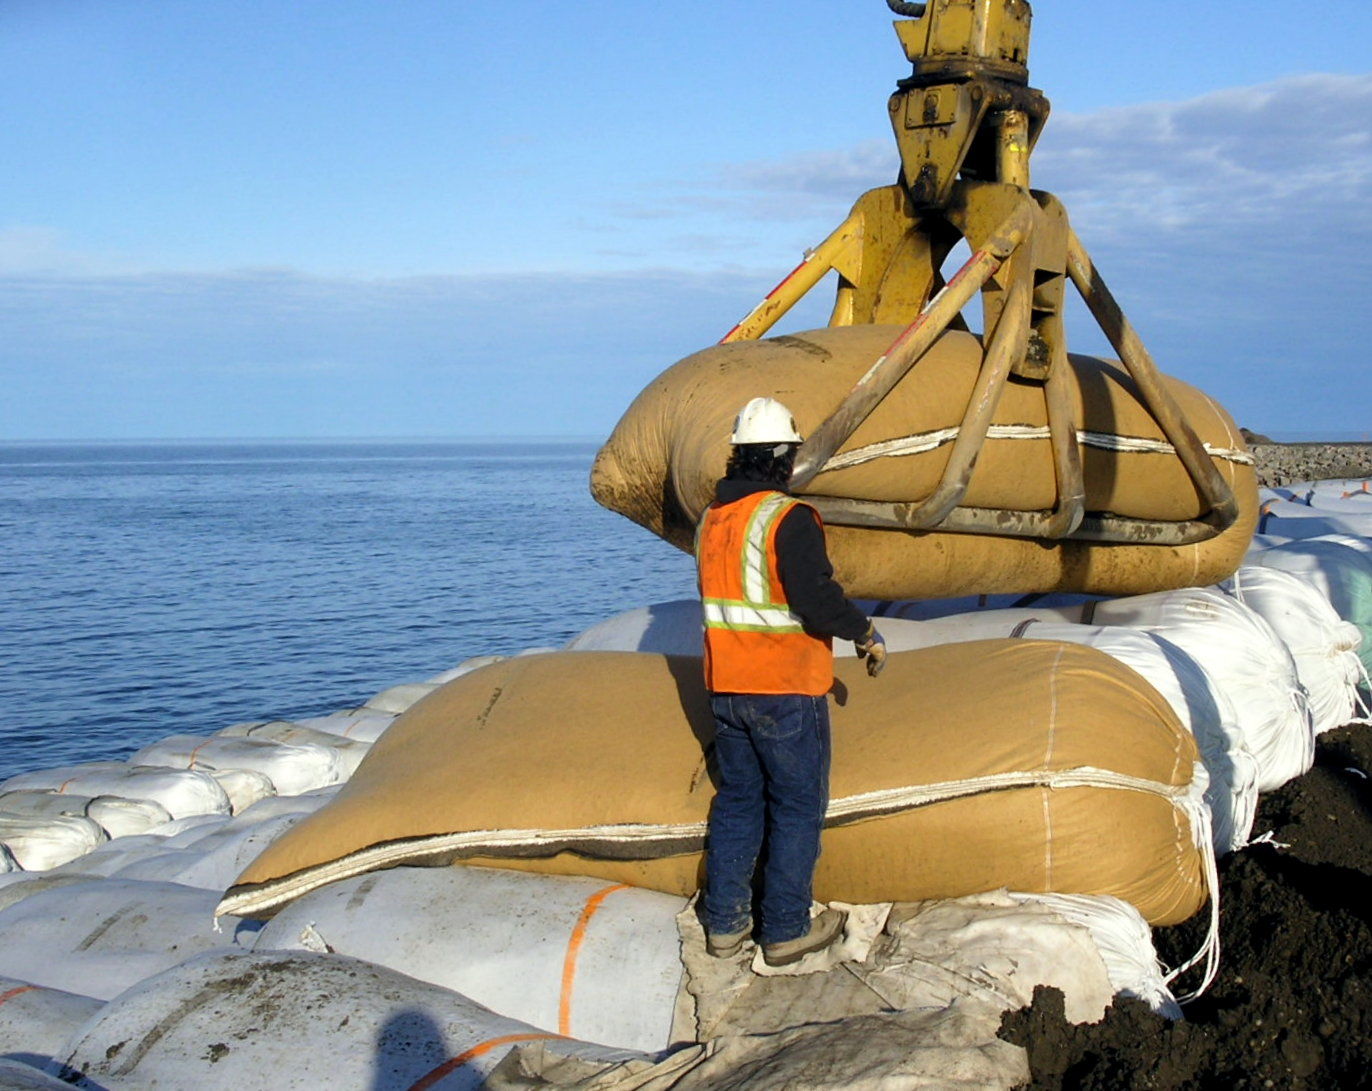 Prototype Testing of Long-Life Geotextile Bags